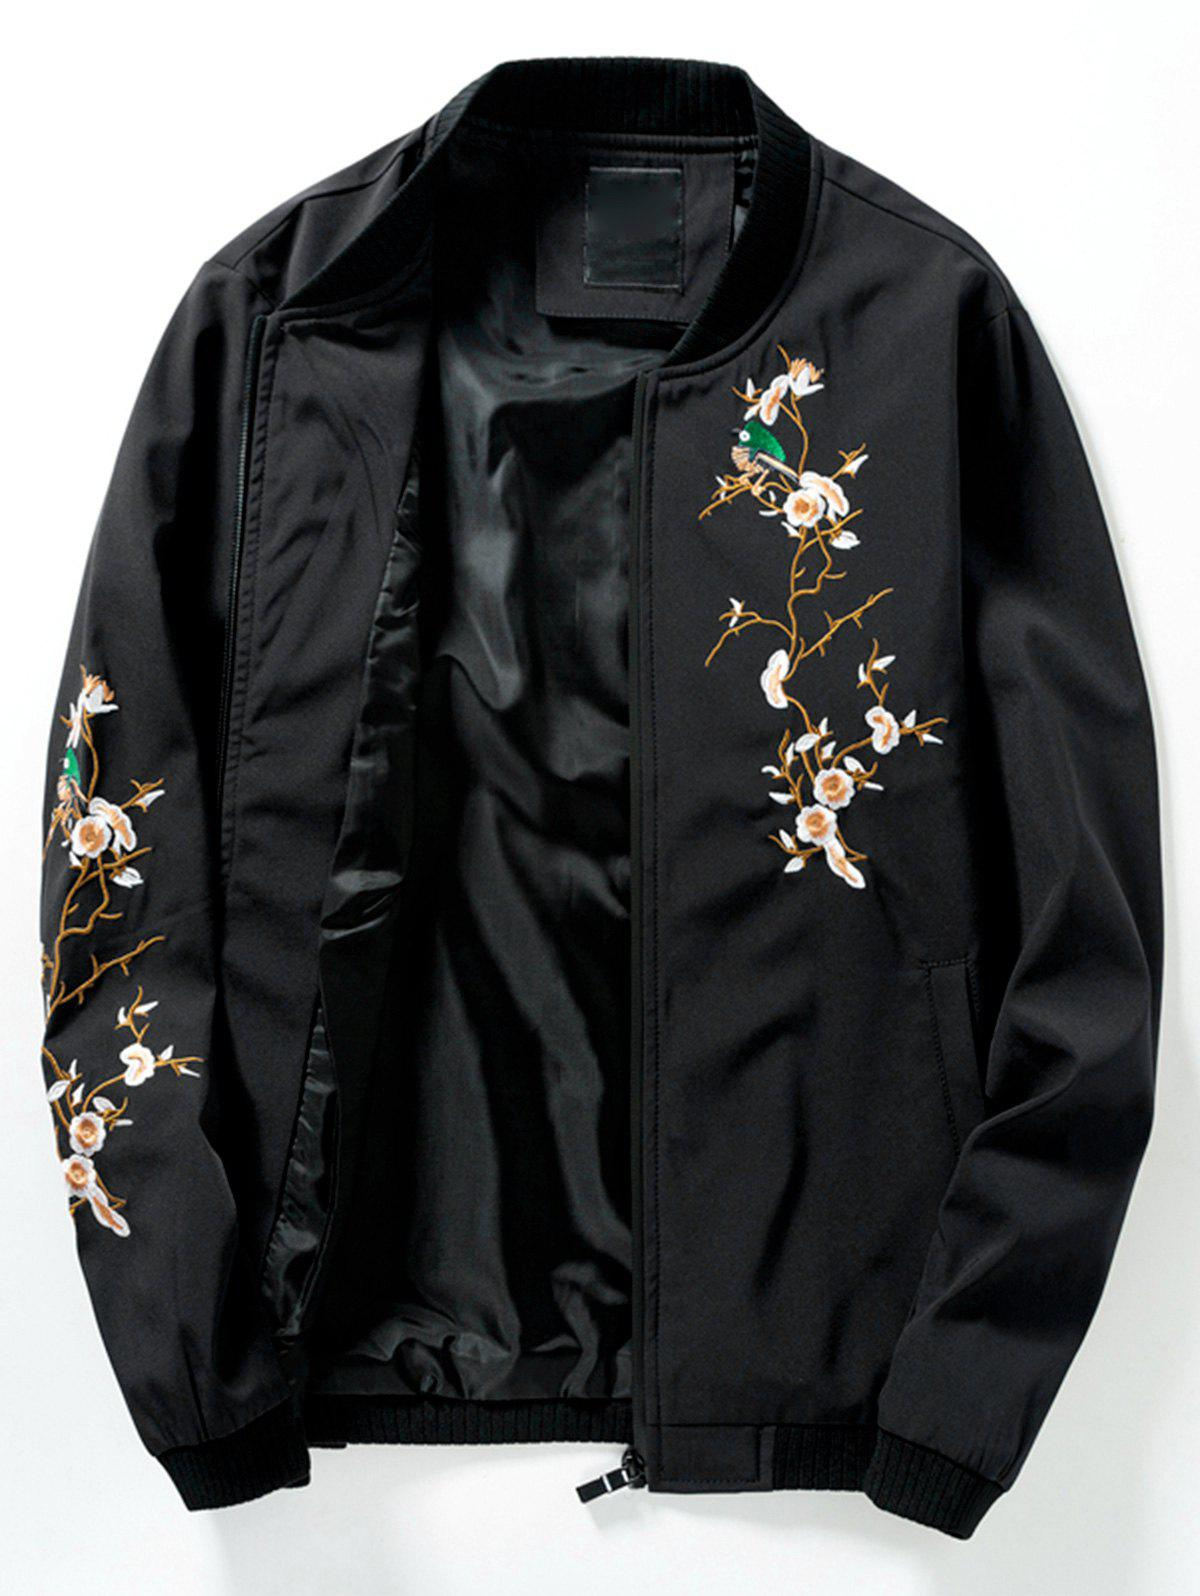 Stand Collar Rib Panel Florals Embroidered Bomber Jacket 232618111